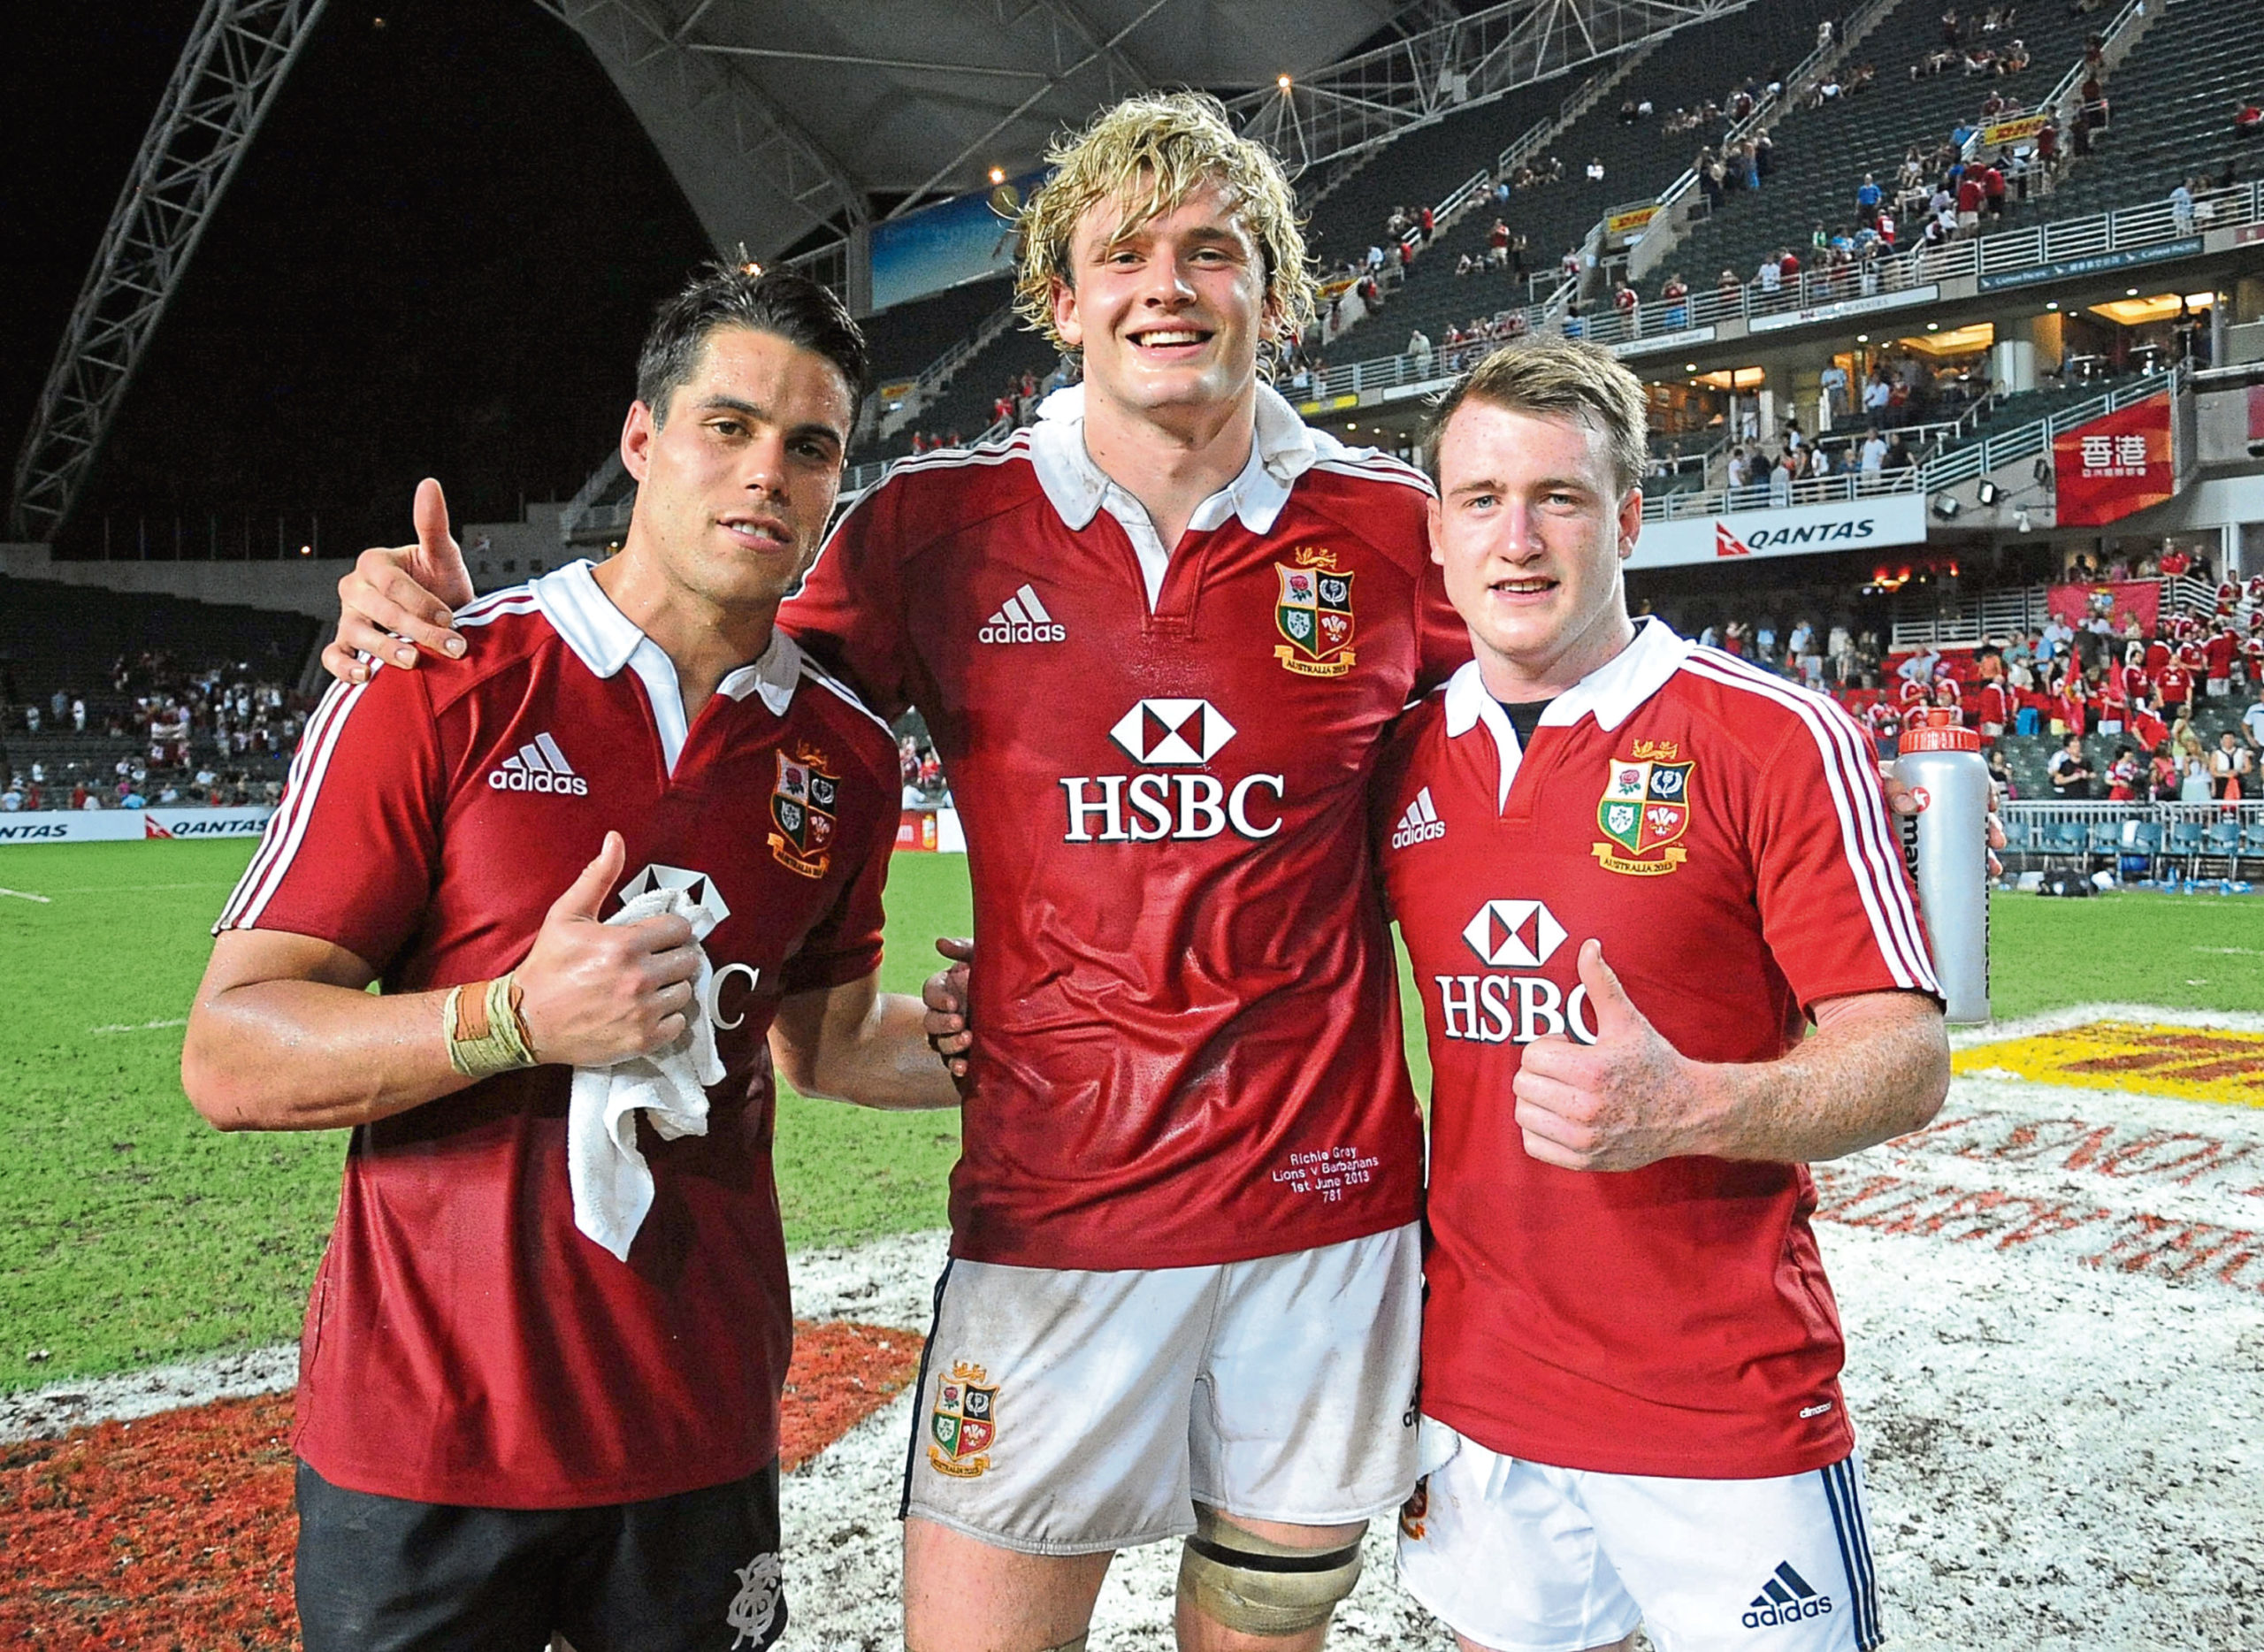 Scotland contingent of Lions (L to R) Sean Maitland, Richie Gray and Stuart Hogg give a thumbs up after victory during 2013 British & Irish Lions tour